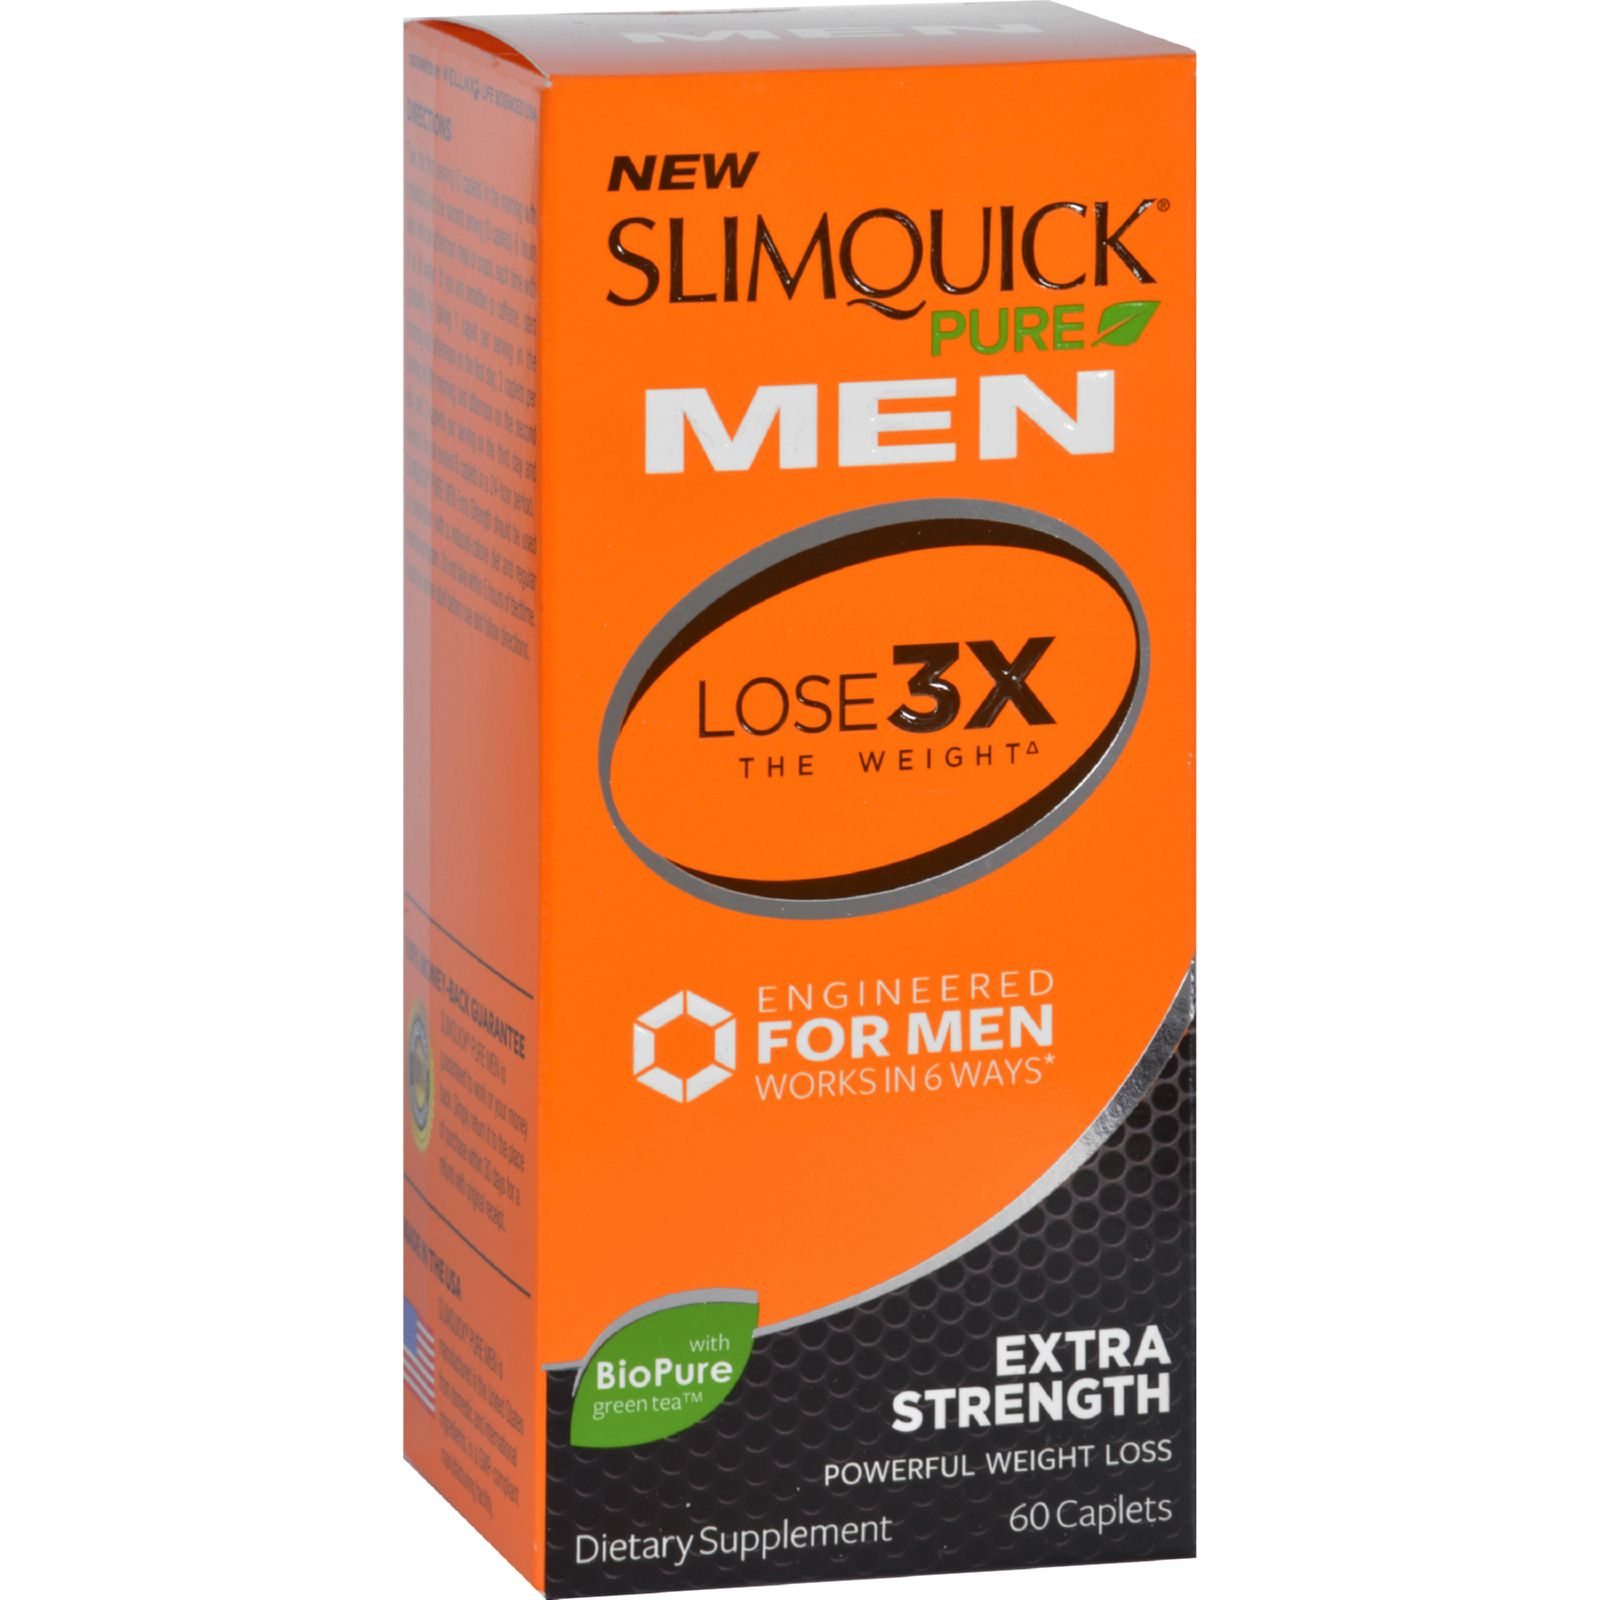 Slimquick  Pure  Men  Extra Strength  60 Capsules